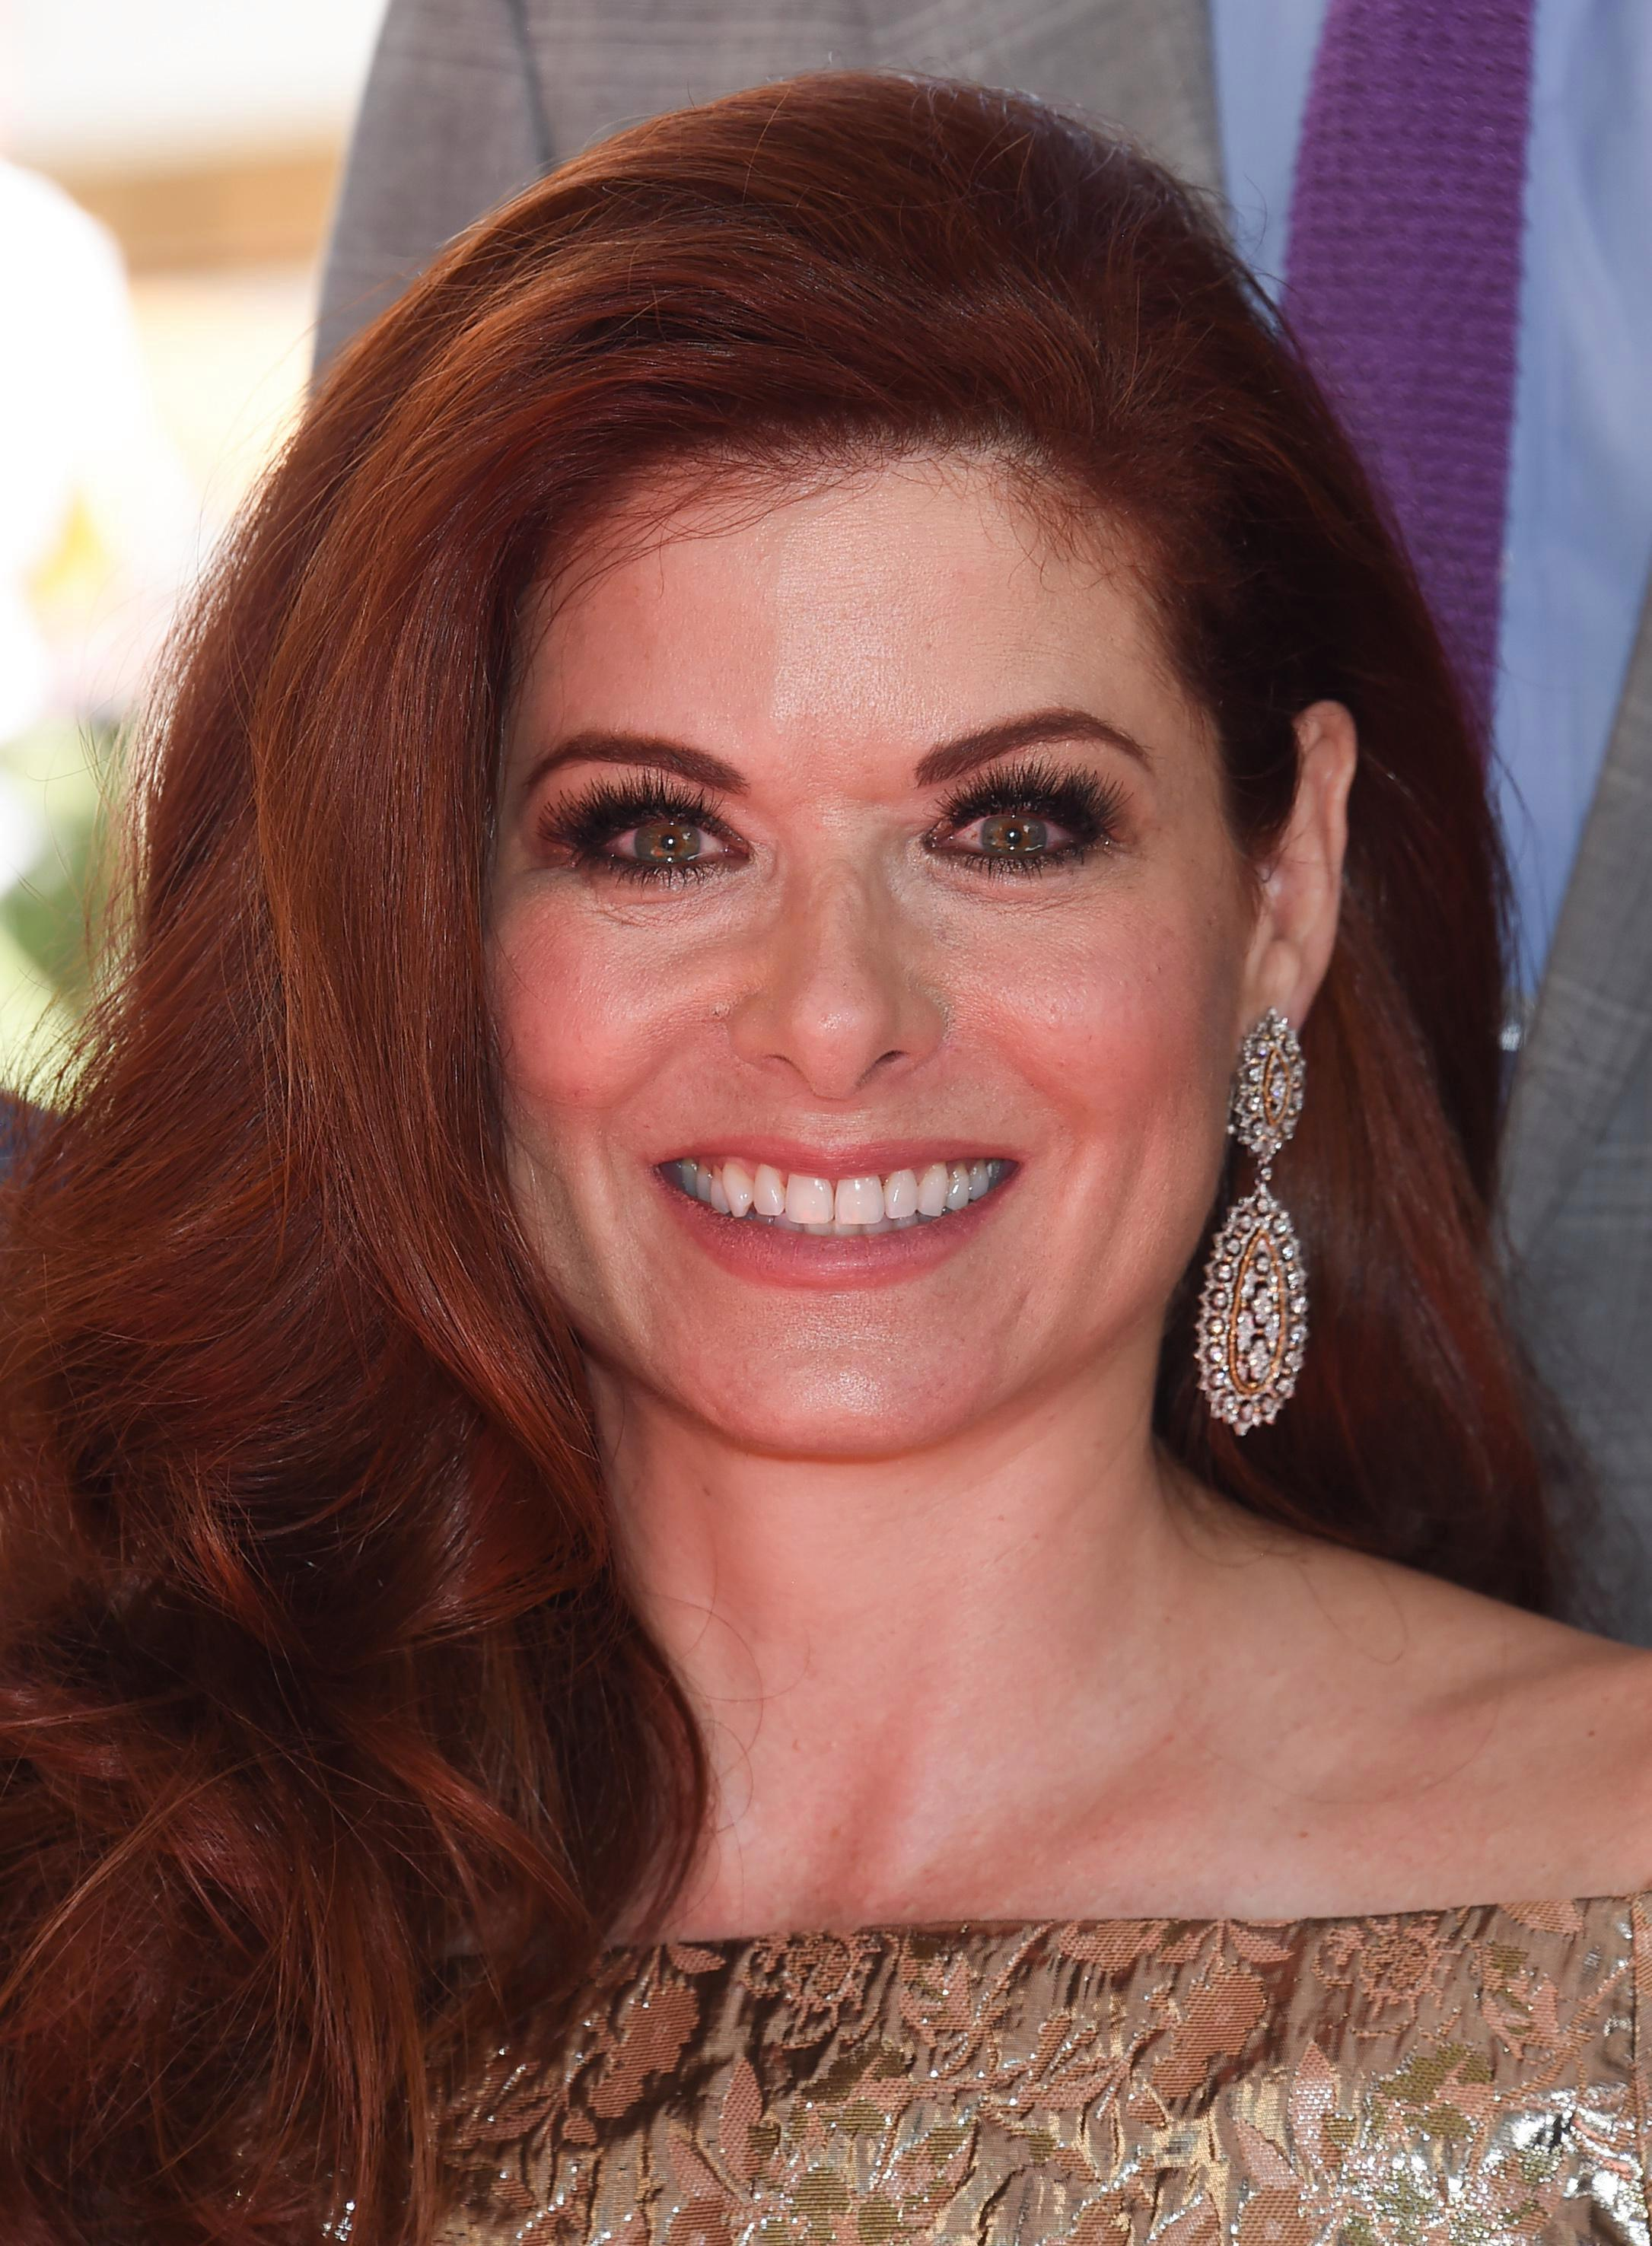 Who is Debra Messing? Grace Adler star on Will & Grace and The Mothman Prophecies and Along Came Polly actress